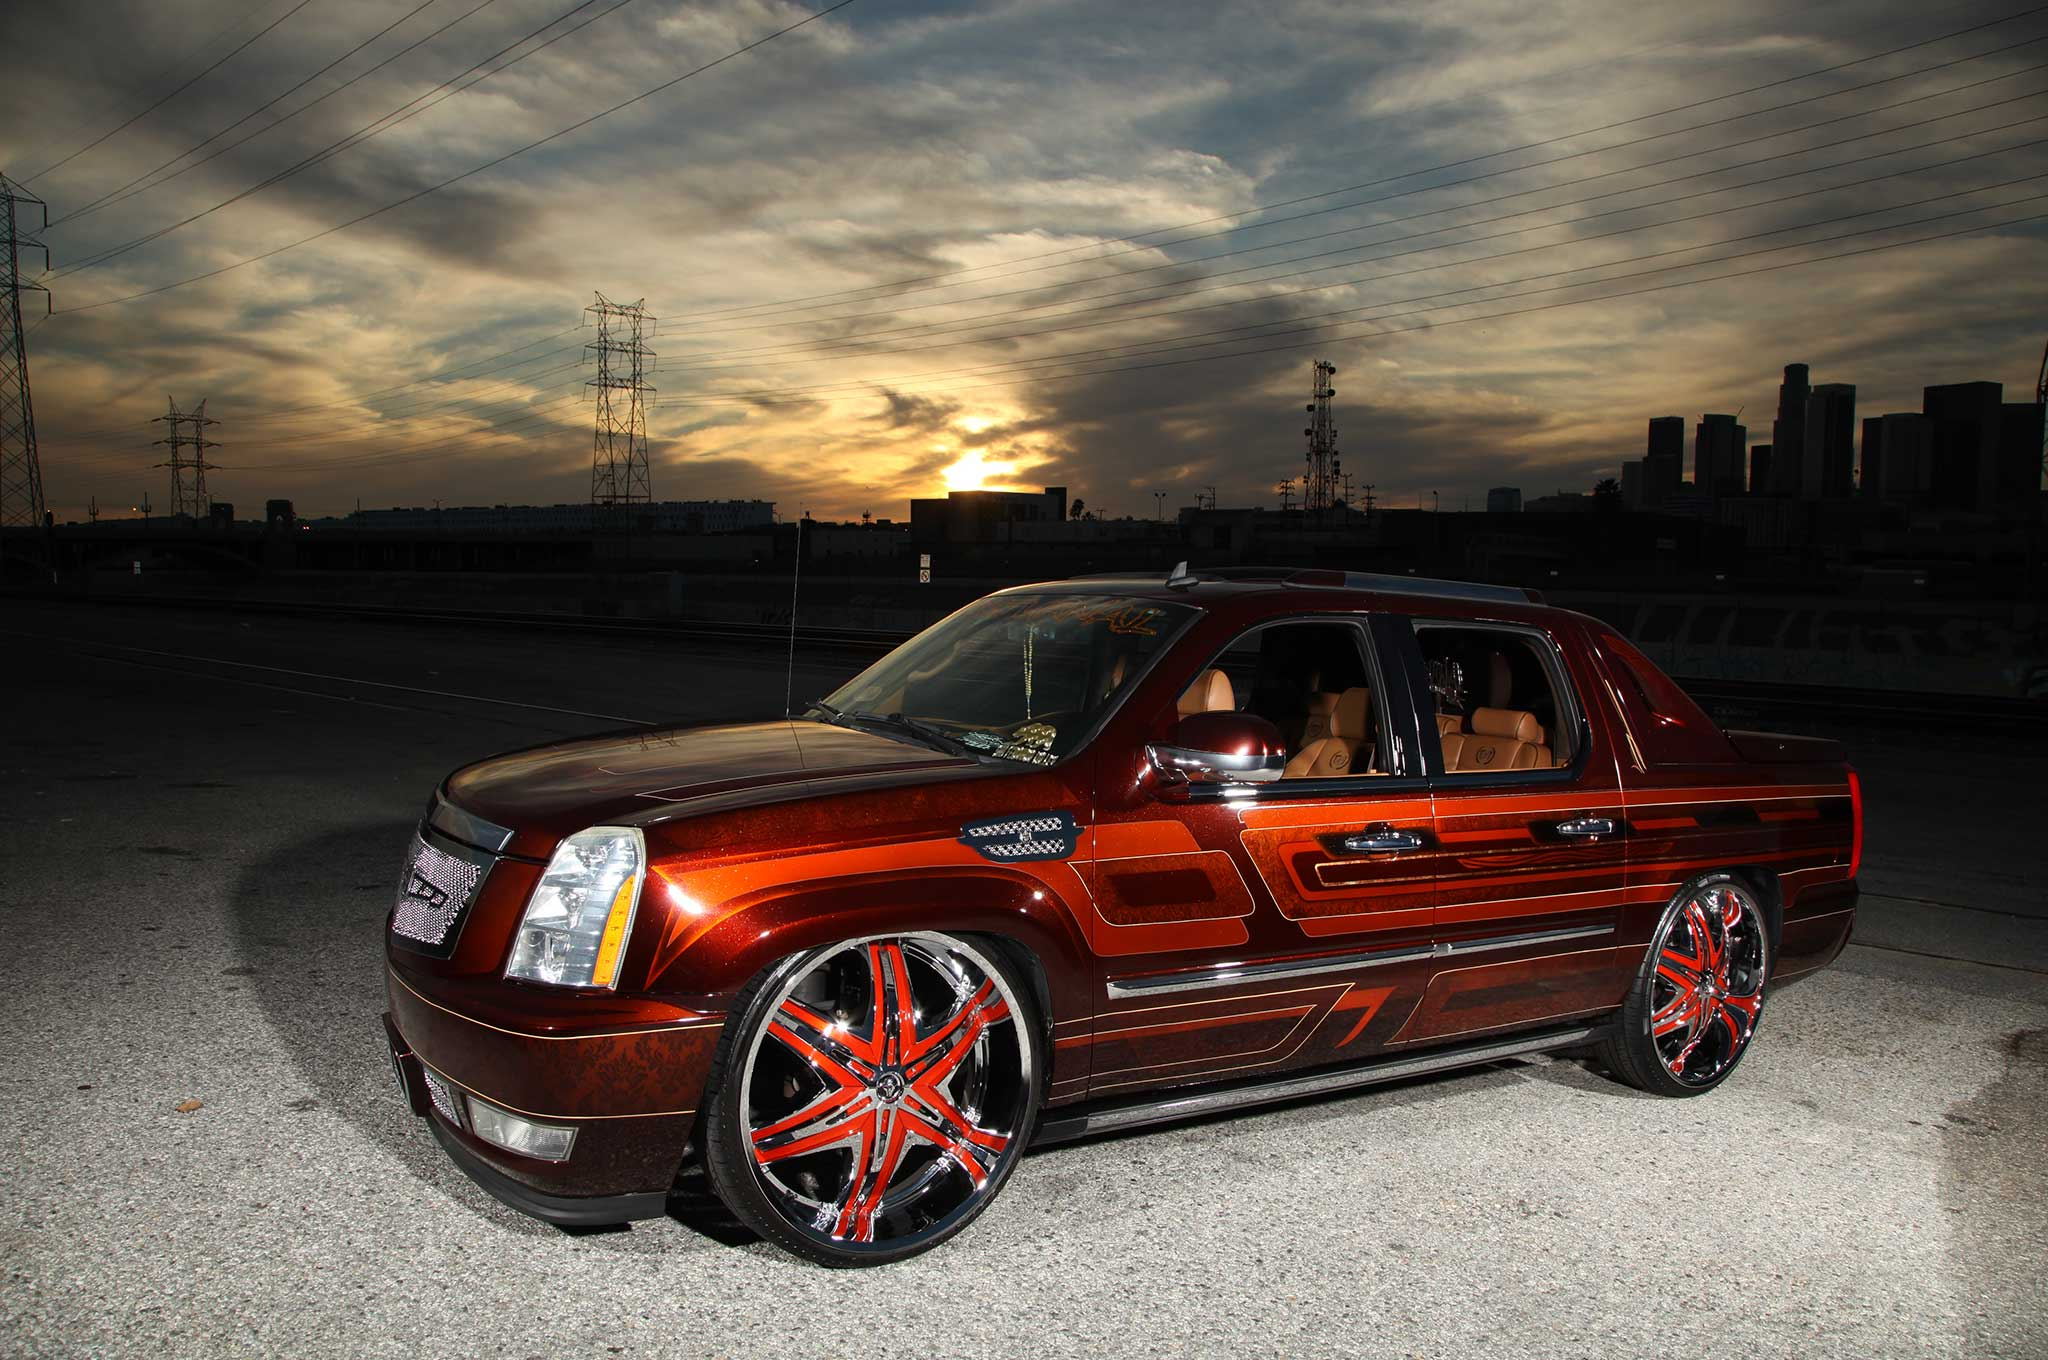 Cadillac Escalade Ext >> A 2008 Cadillac Escalade EXT on Diablo Wheels - Lowrider